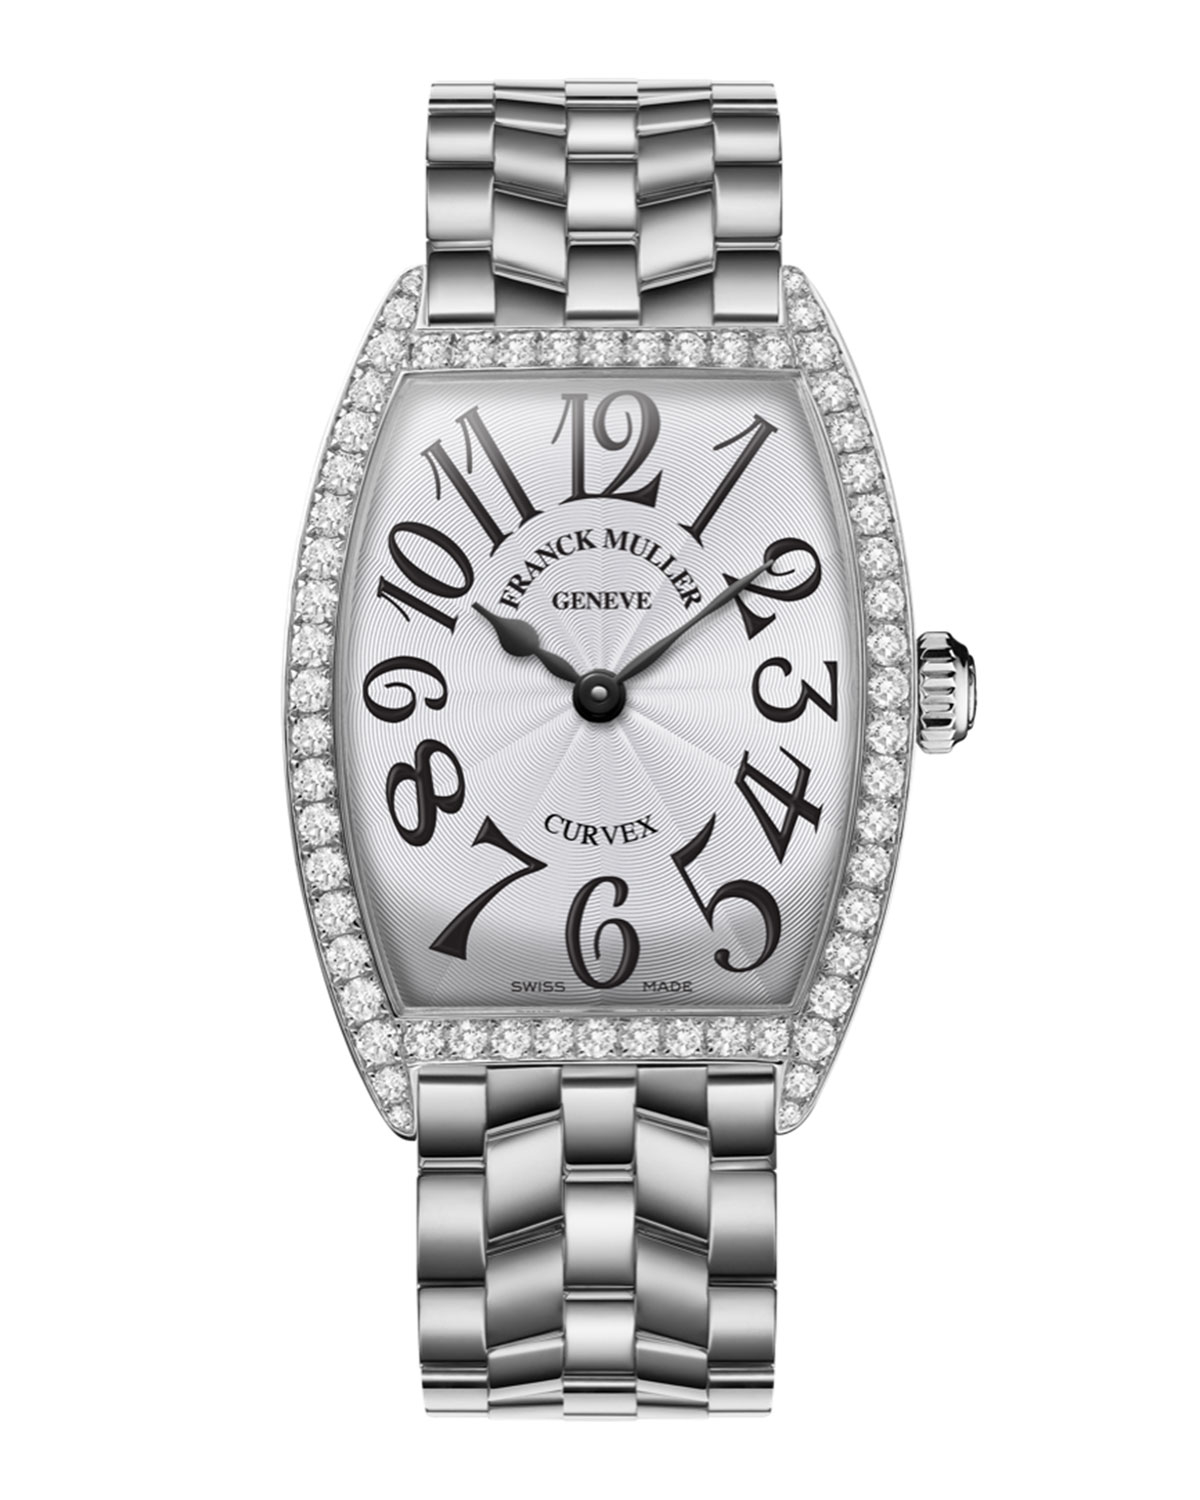 Lyst franck muller ladies curves stainless steel diamond watch in metallic for Franck muller watches